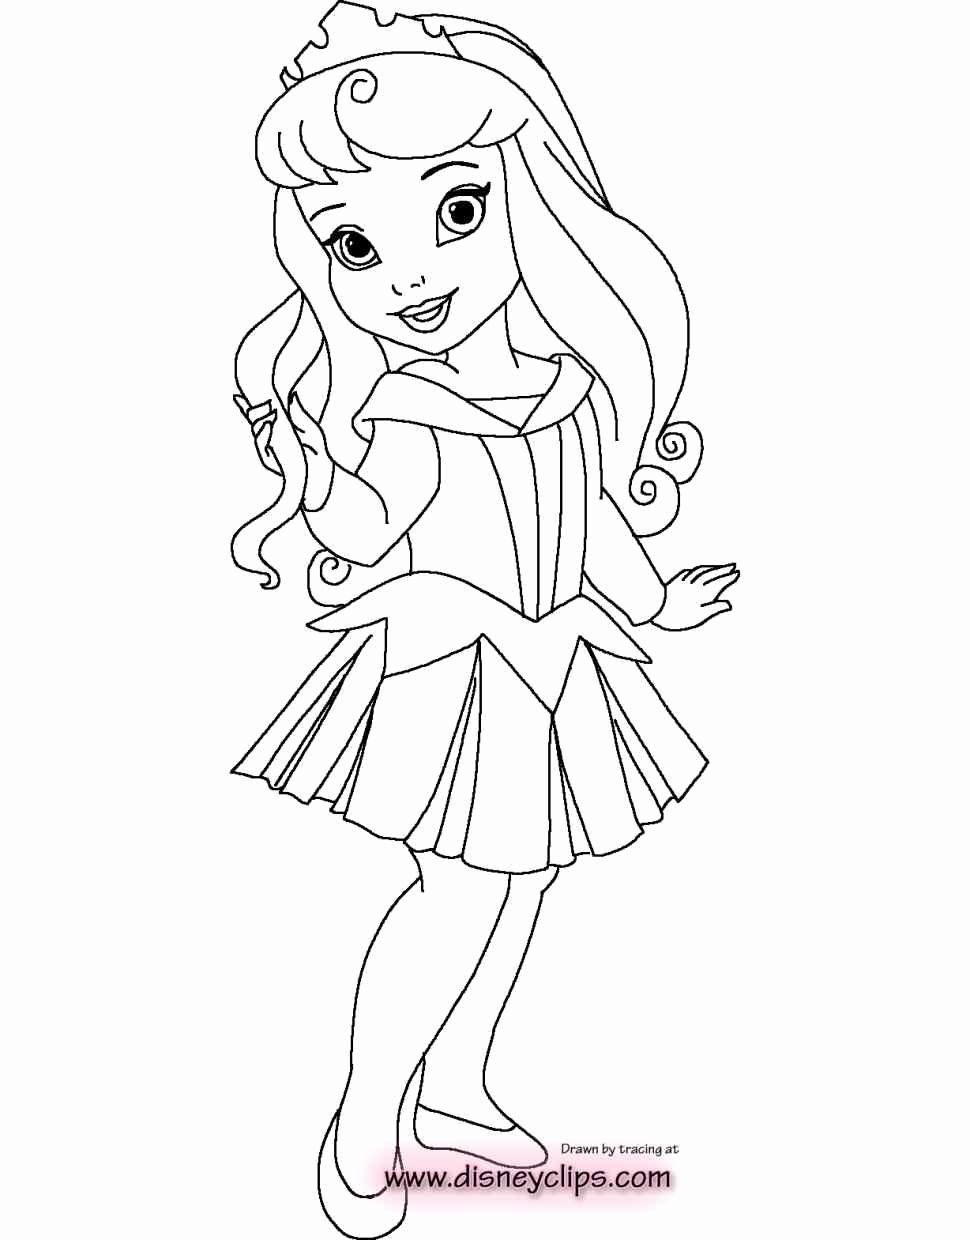 Kids Coloring Pages Disney Babies In 2020 Disney Princess Coloring Pages Mermaid Coloring Pages Disney Princess Colors